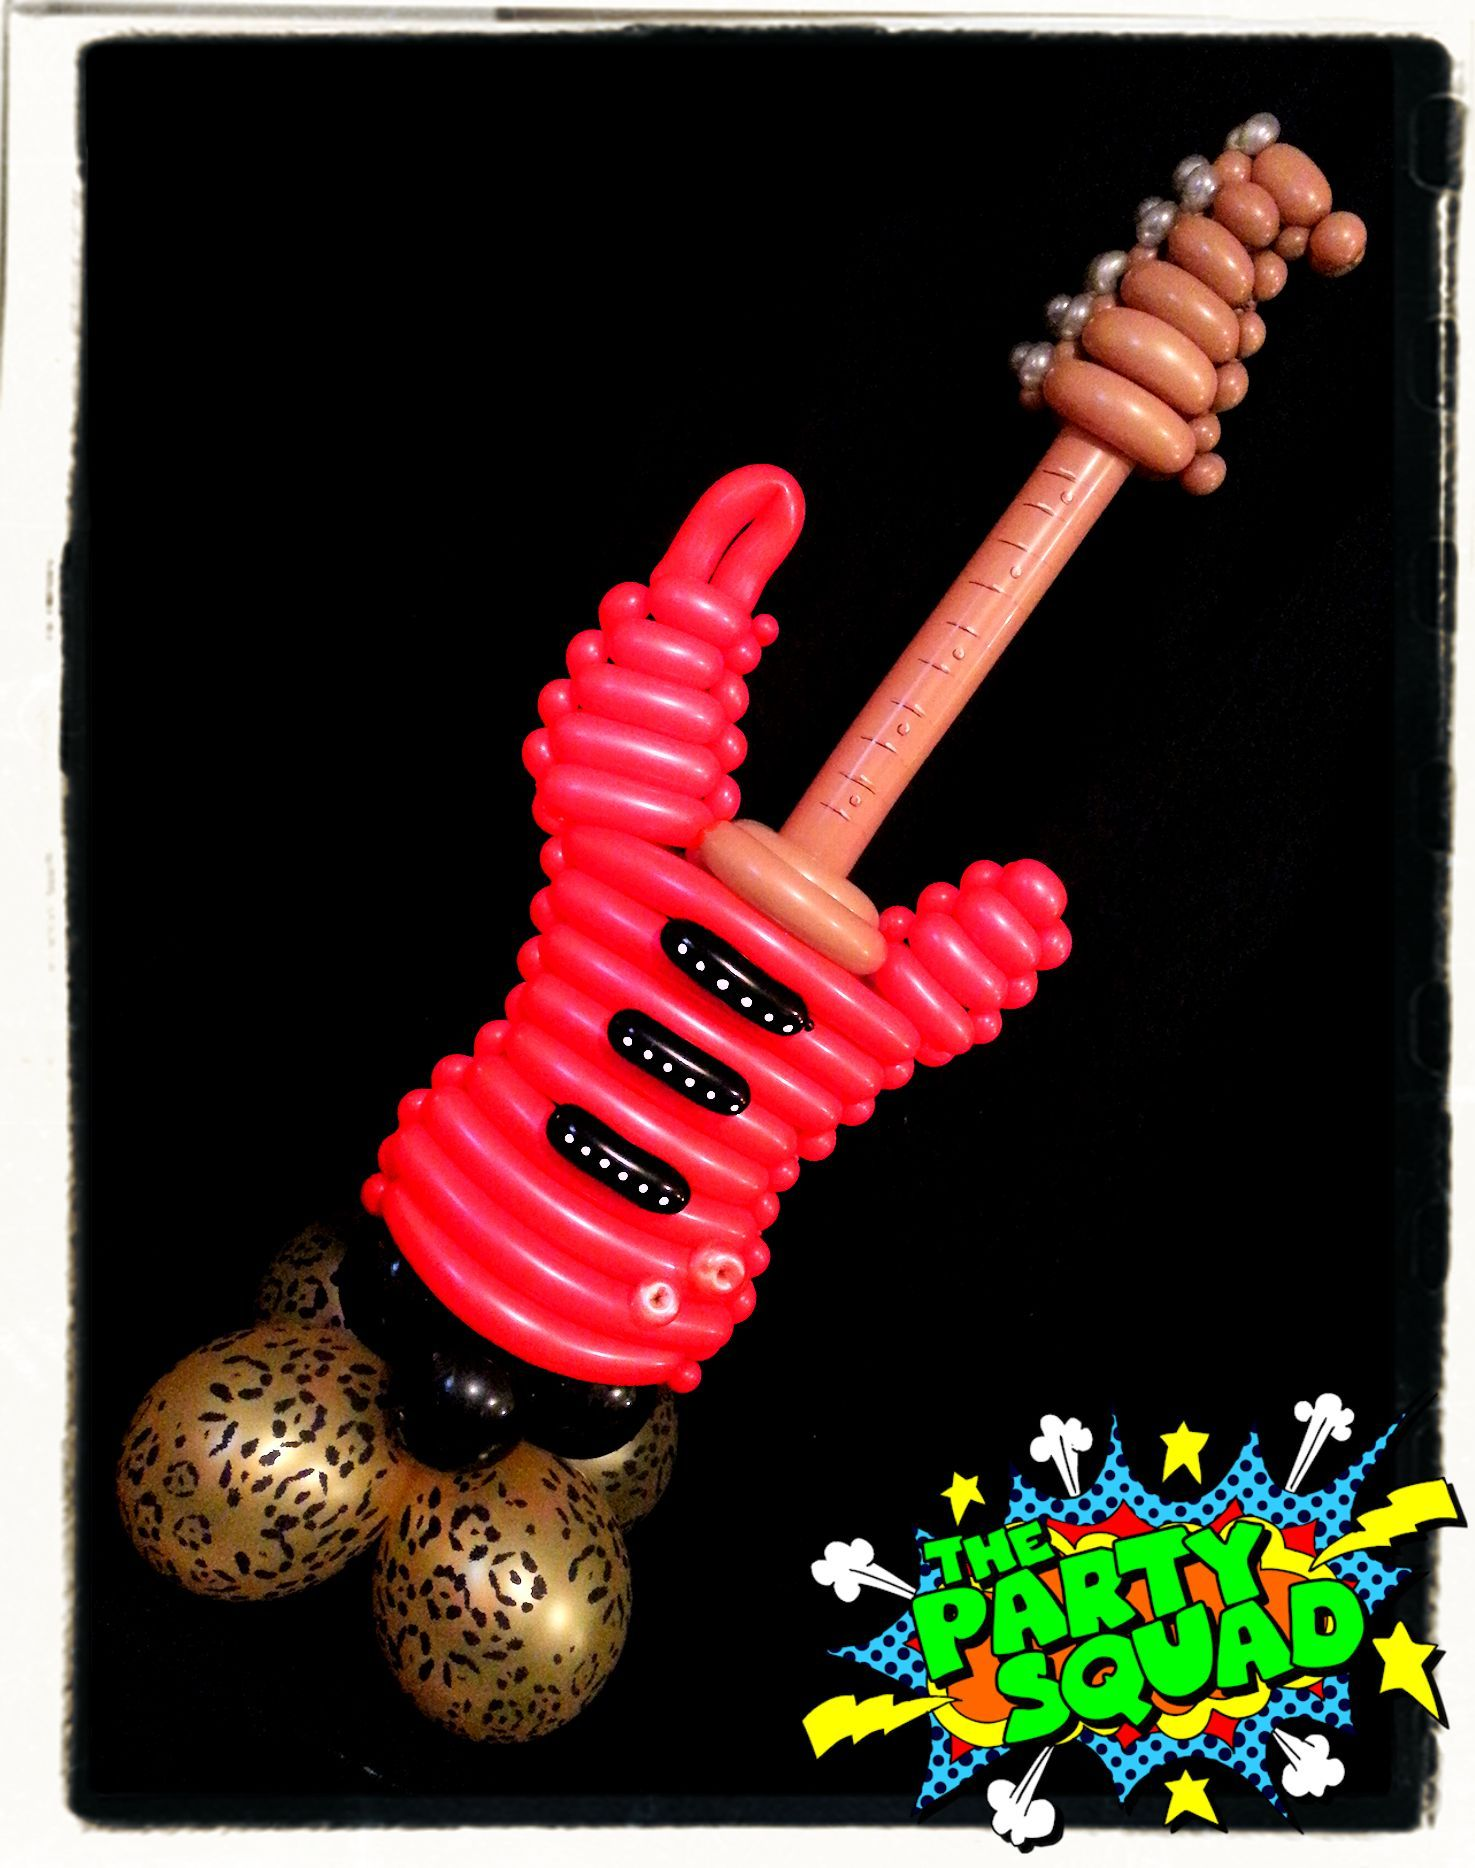 Electric Guitar Balloon! Twisted by Ditzy Doodles :) http://www.thepartysquad.co.uk/ http://www.facebook.com/ThePartySquadUK/